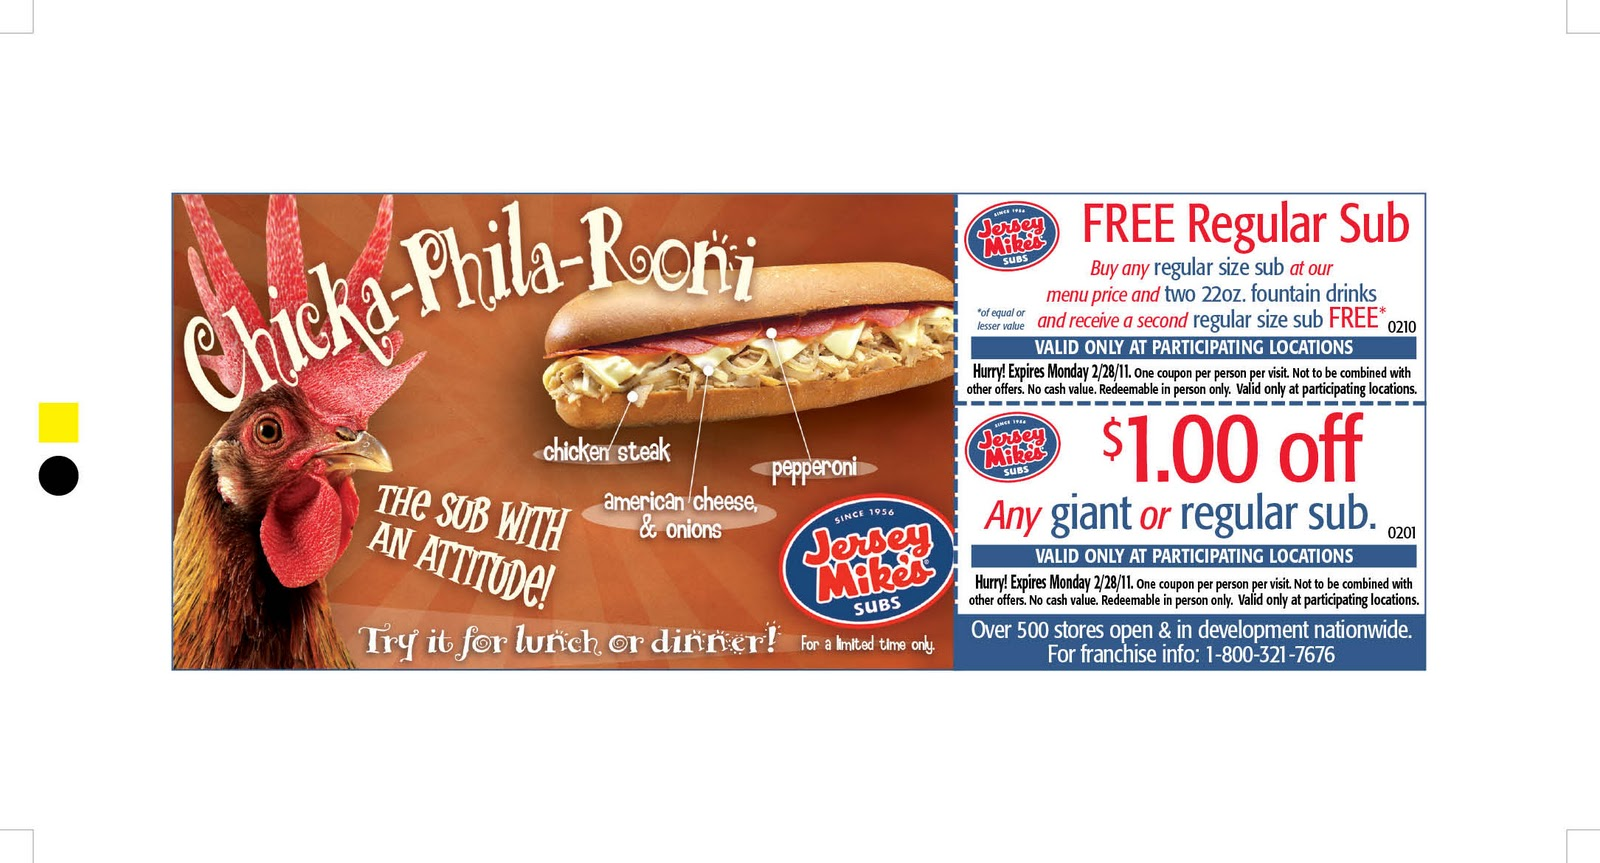 It's just a photo of Irresistible Jersey Mikes Printable Coupons